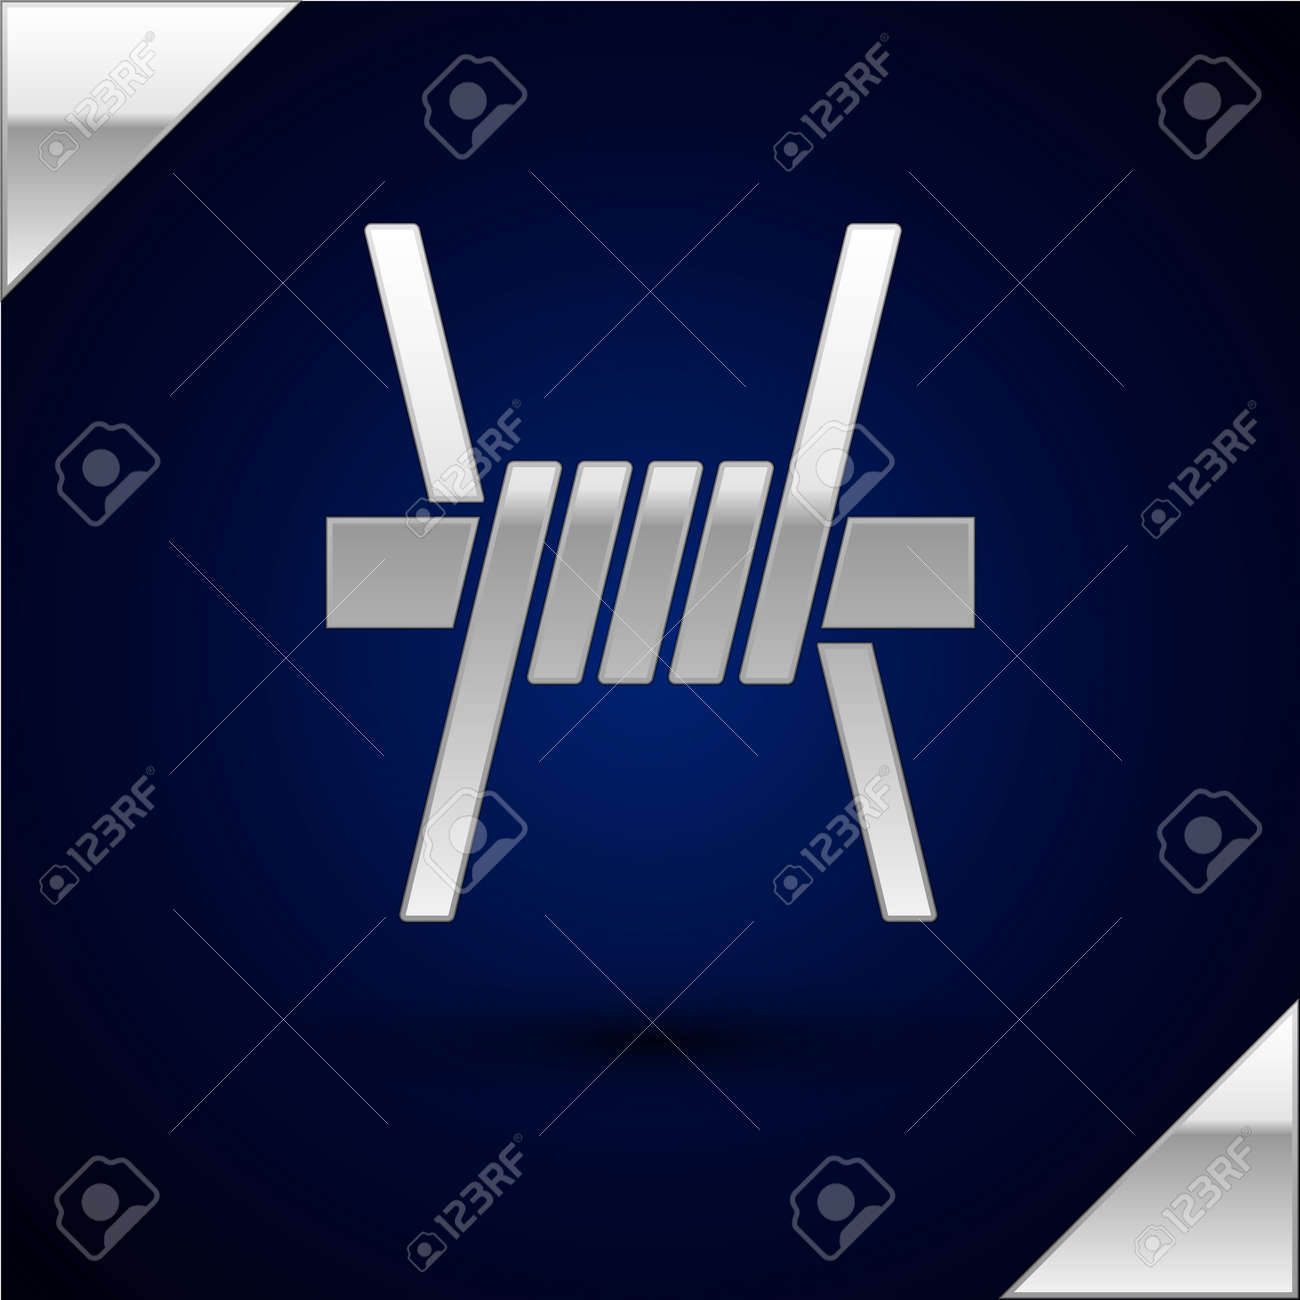 Silver Barbed wire icon isolated on dark blue background. Vector - 170180498